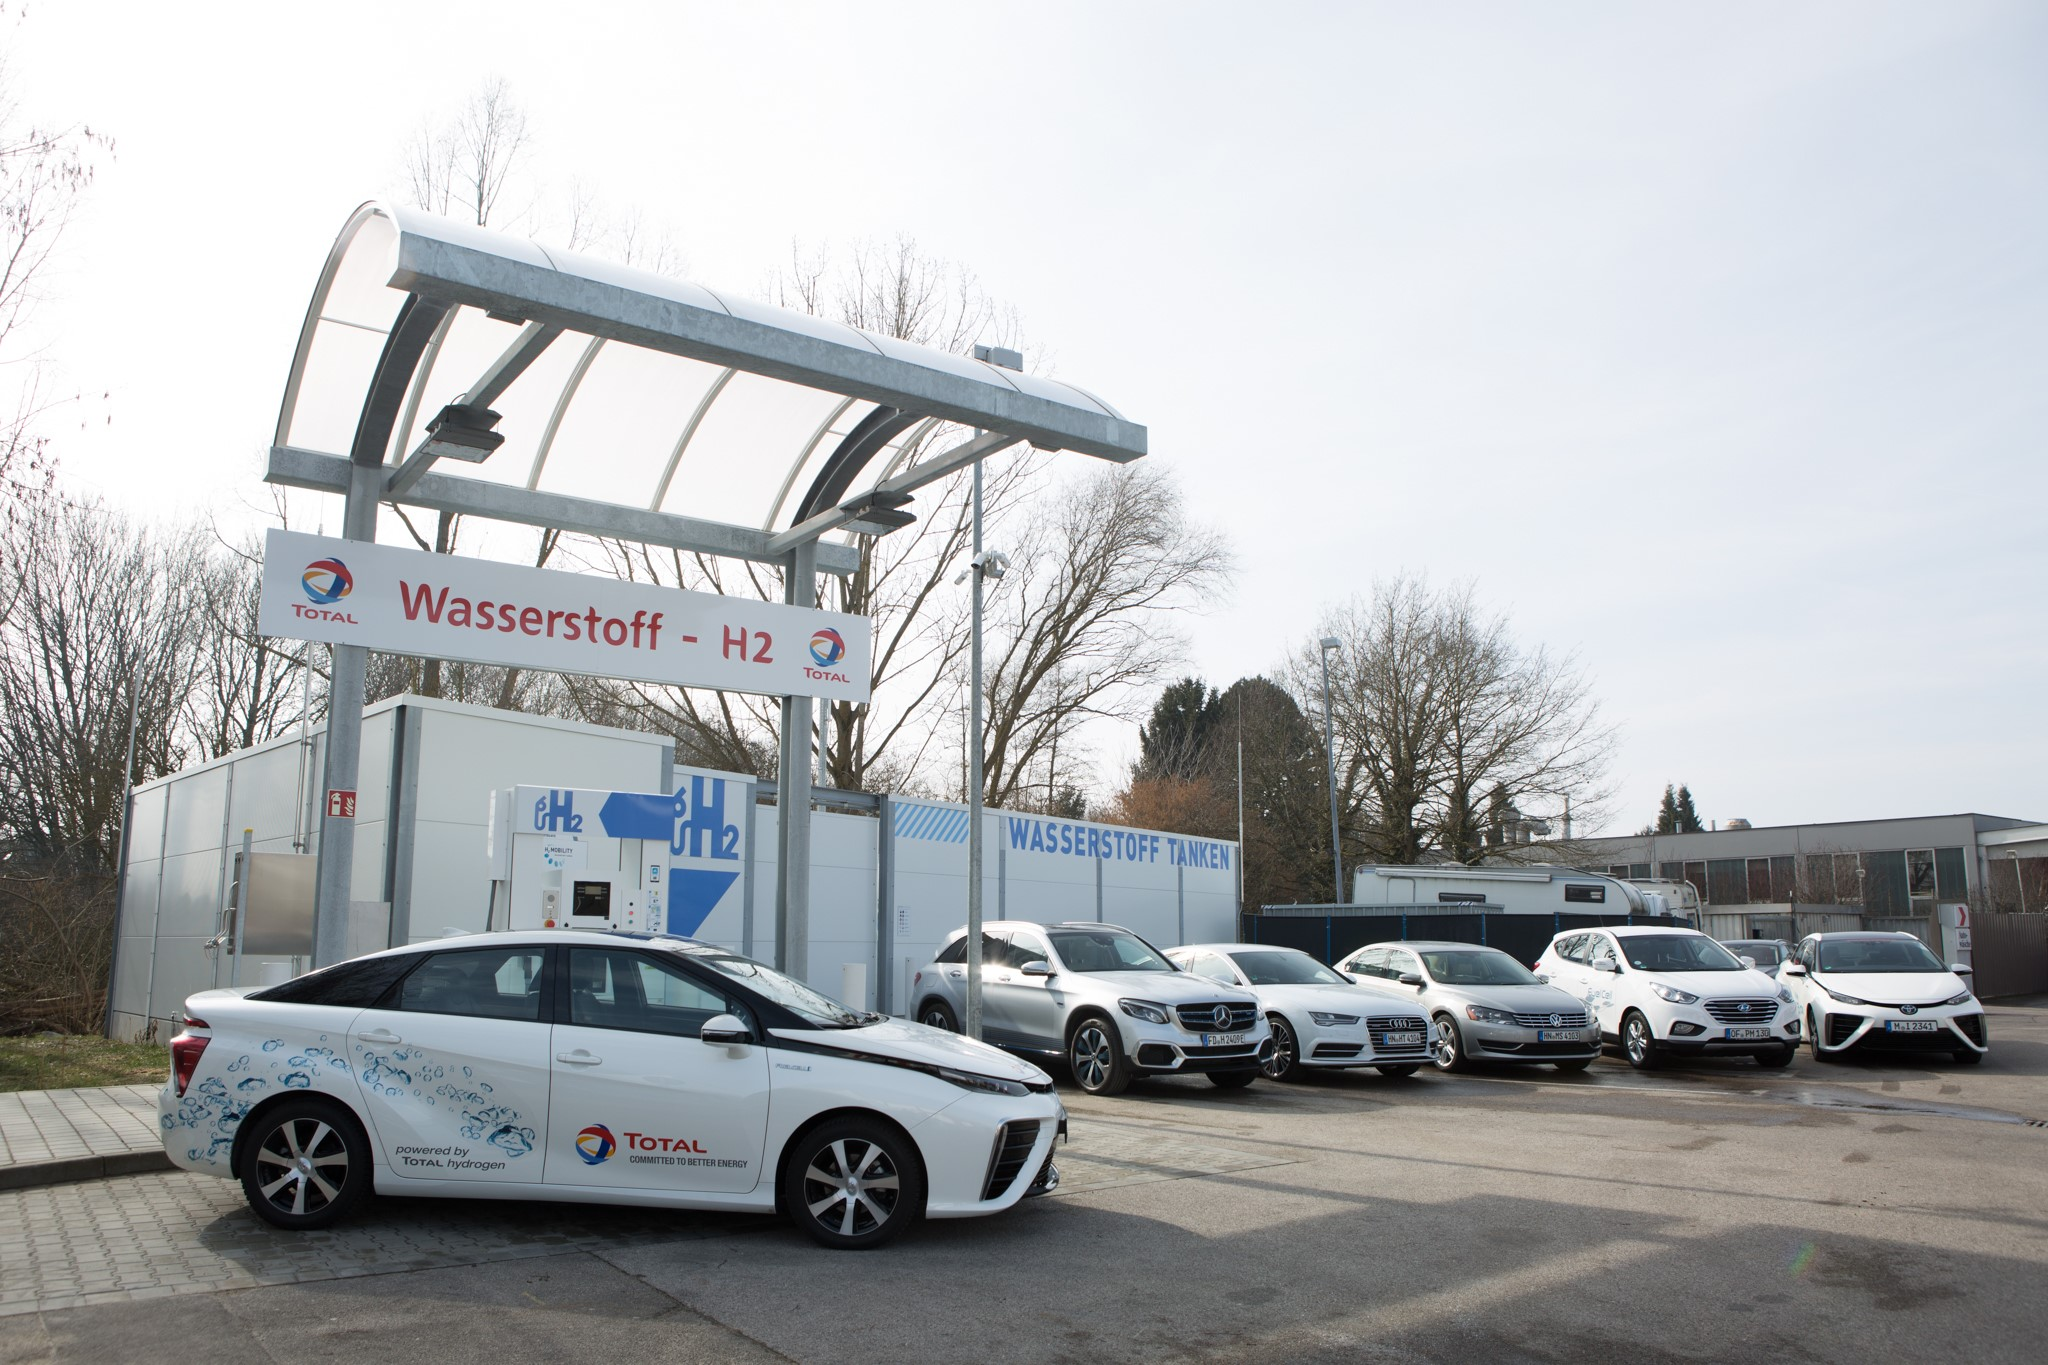 H2 service station in Ingolstadt with hydrogen vehicles